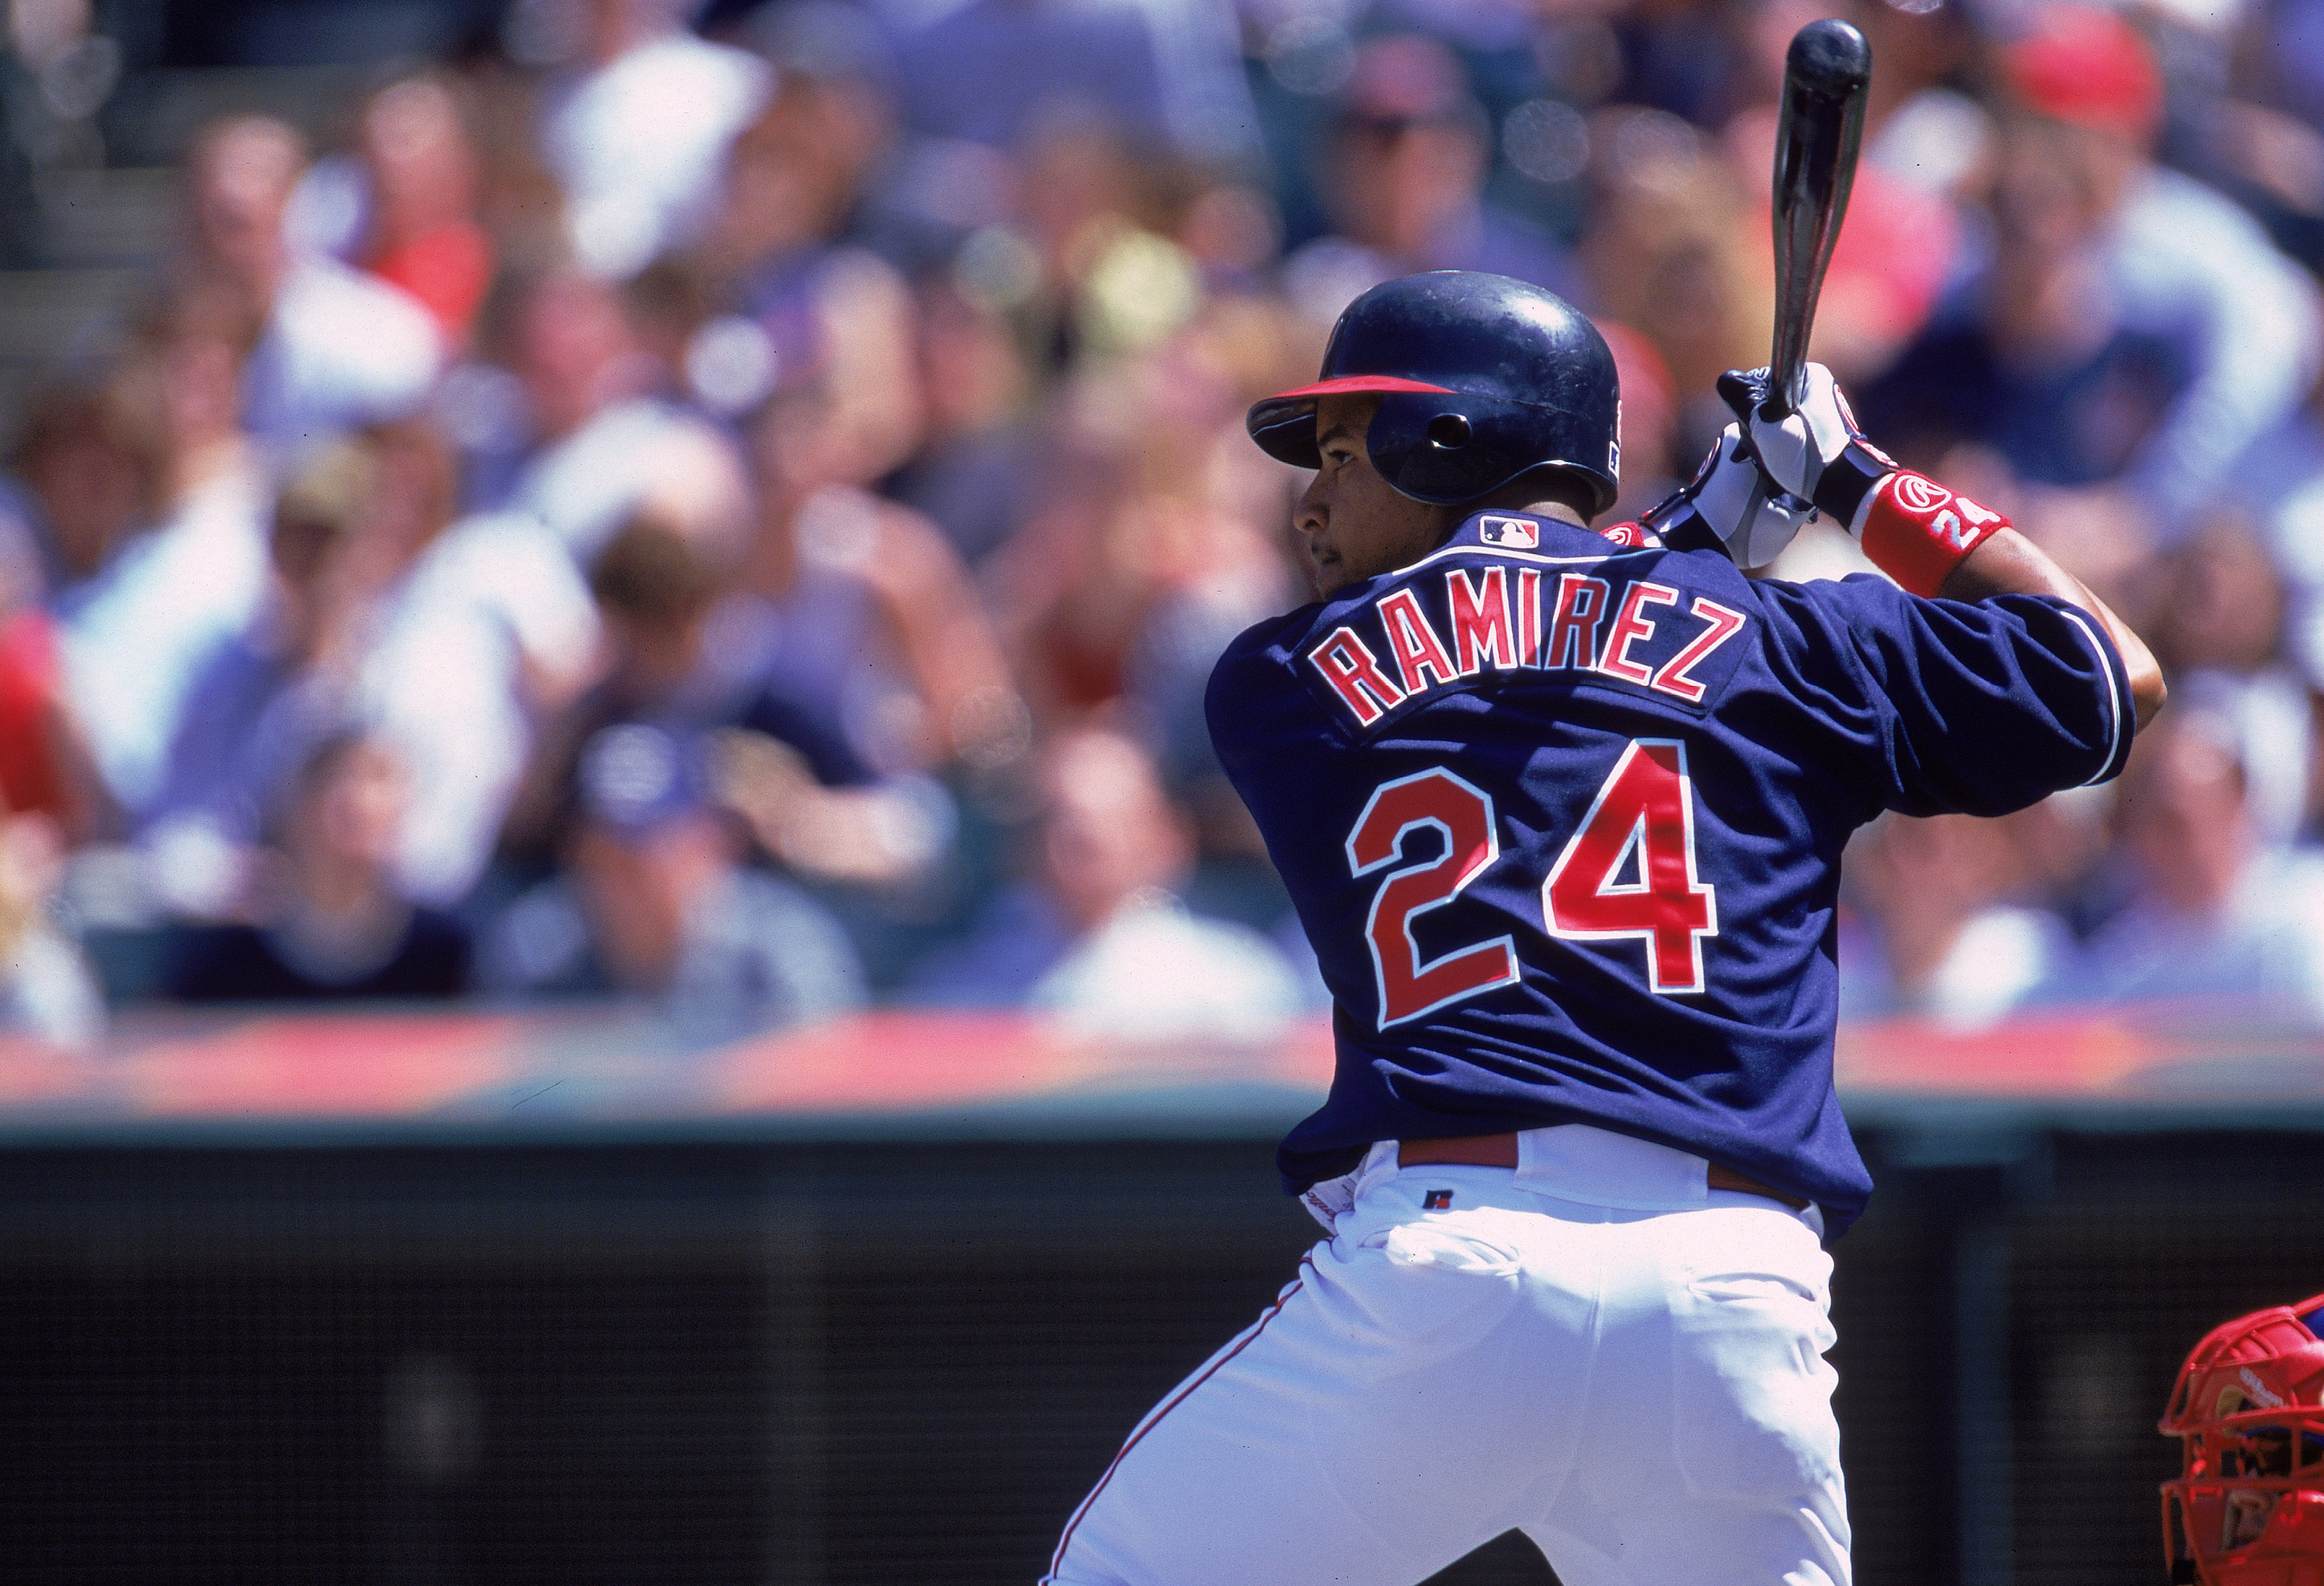 15 Apr 2000: Manny Ramirez #24 of the Cleveland Indians stands ready at bat during the game against the Texas Rangers at the Jacobs Field in Cleveland, Ohio. The Rangers defeated the Indians 6-4. Mandatory Credit: Harry How  /Allsport